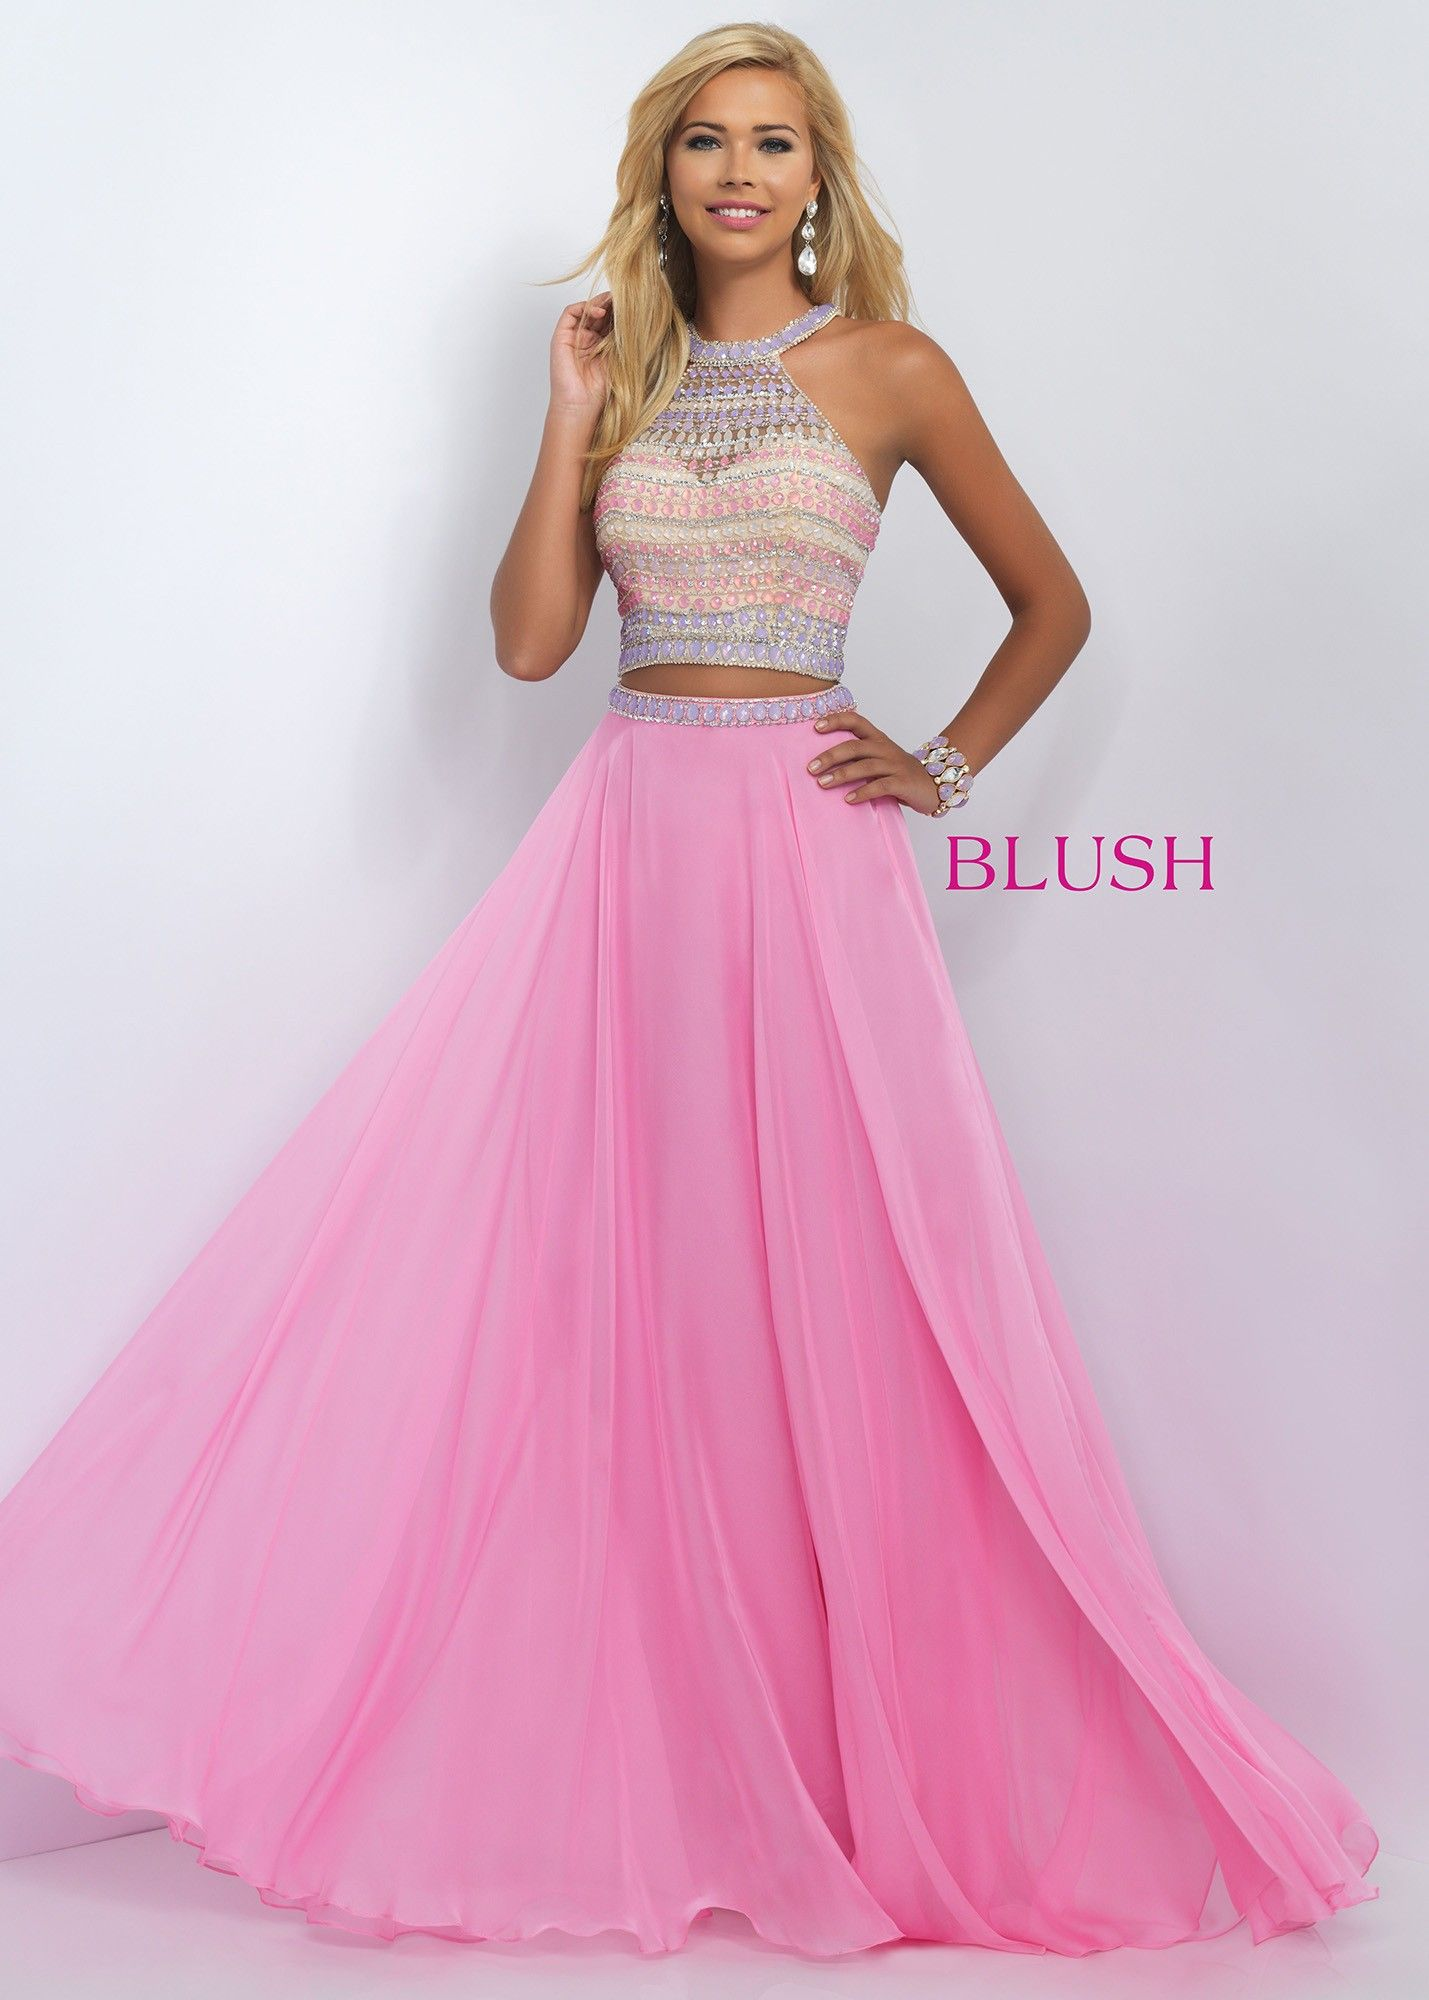 Blush 11056 Fancy Beaded Halter Crop Top Prom Dress | Dulces 15 ...